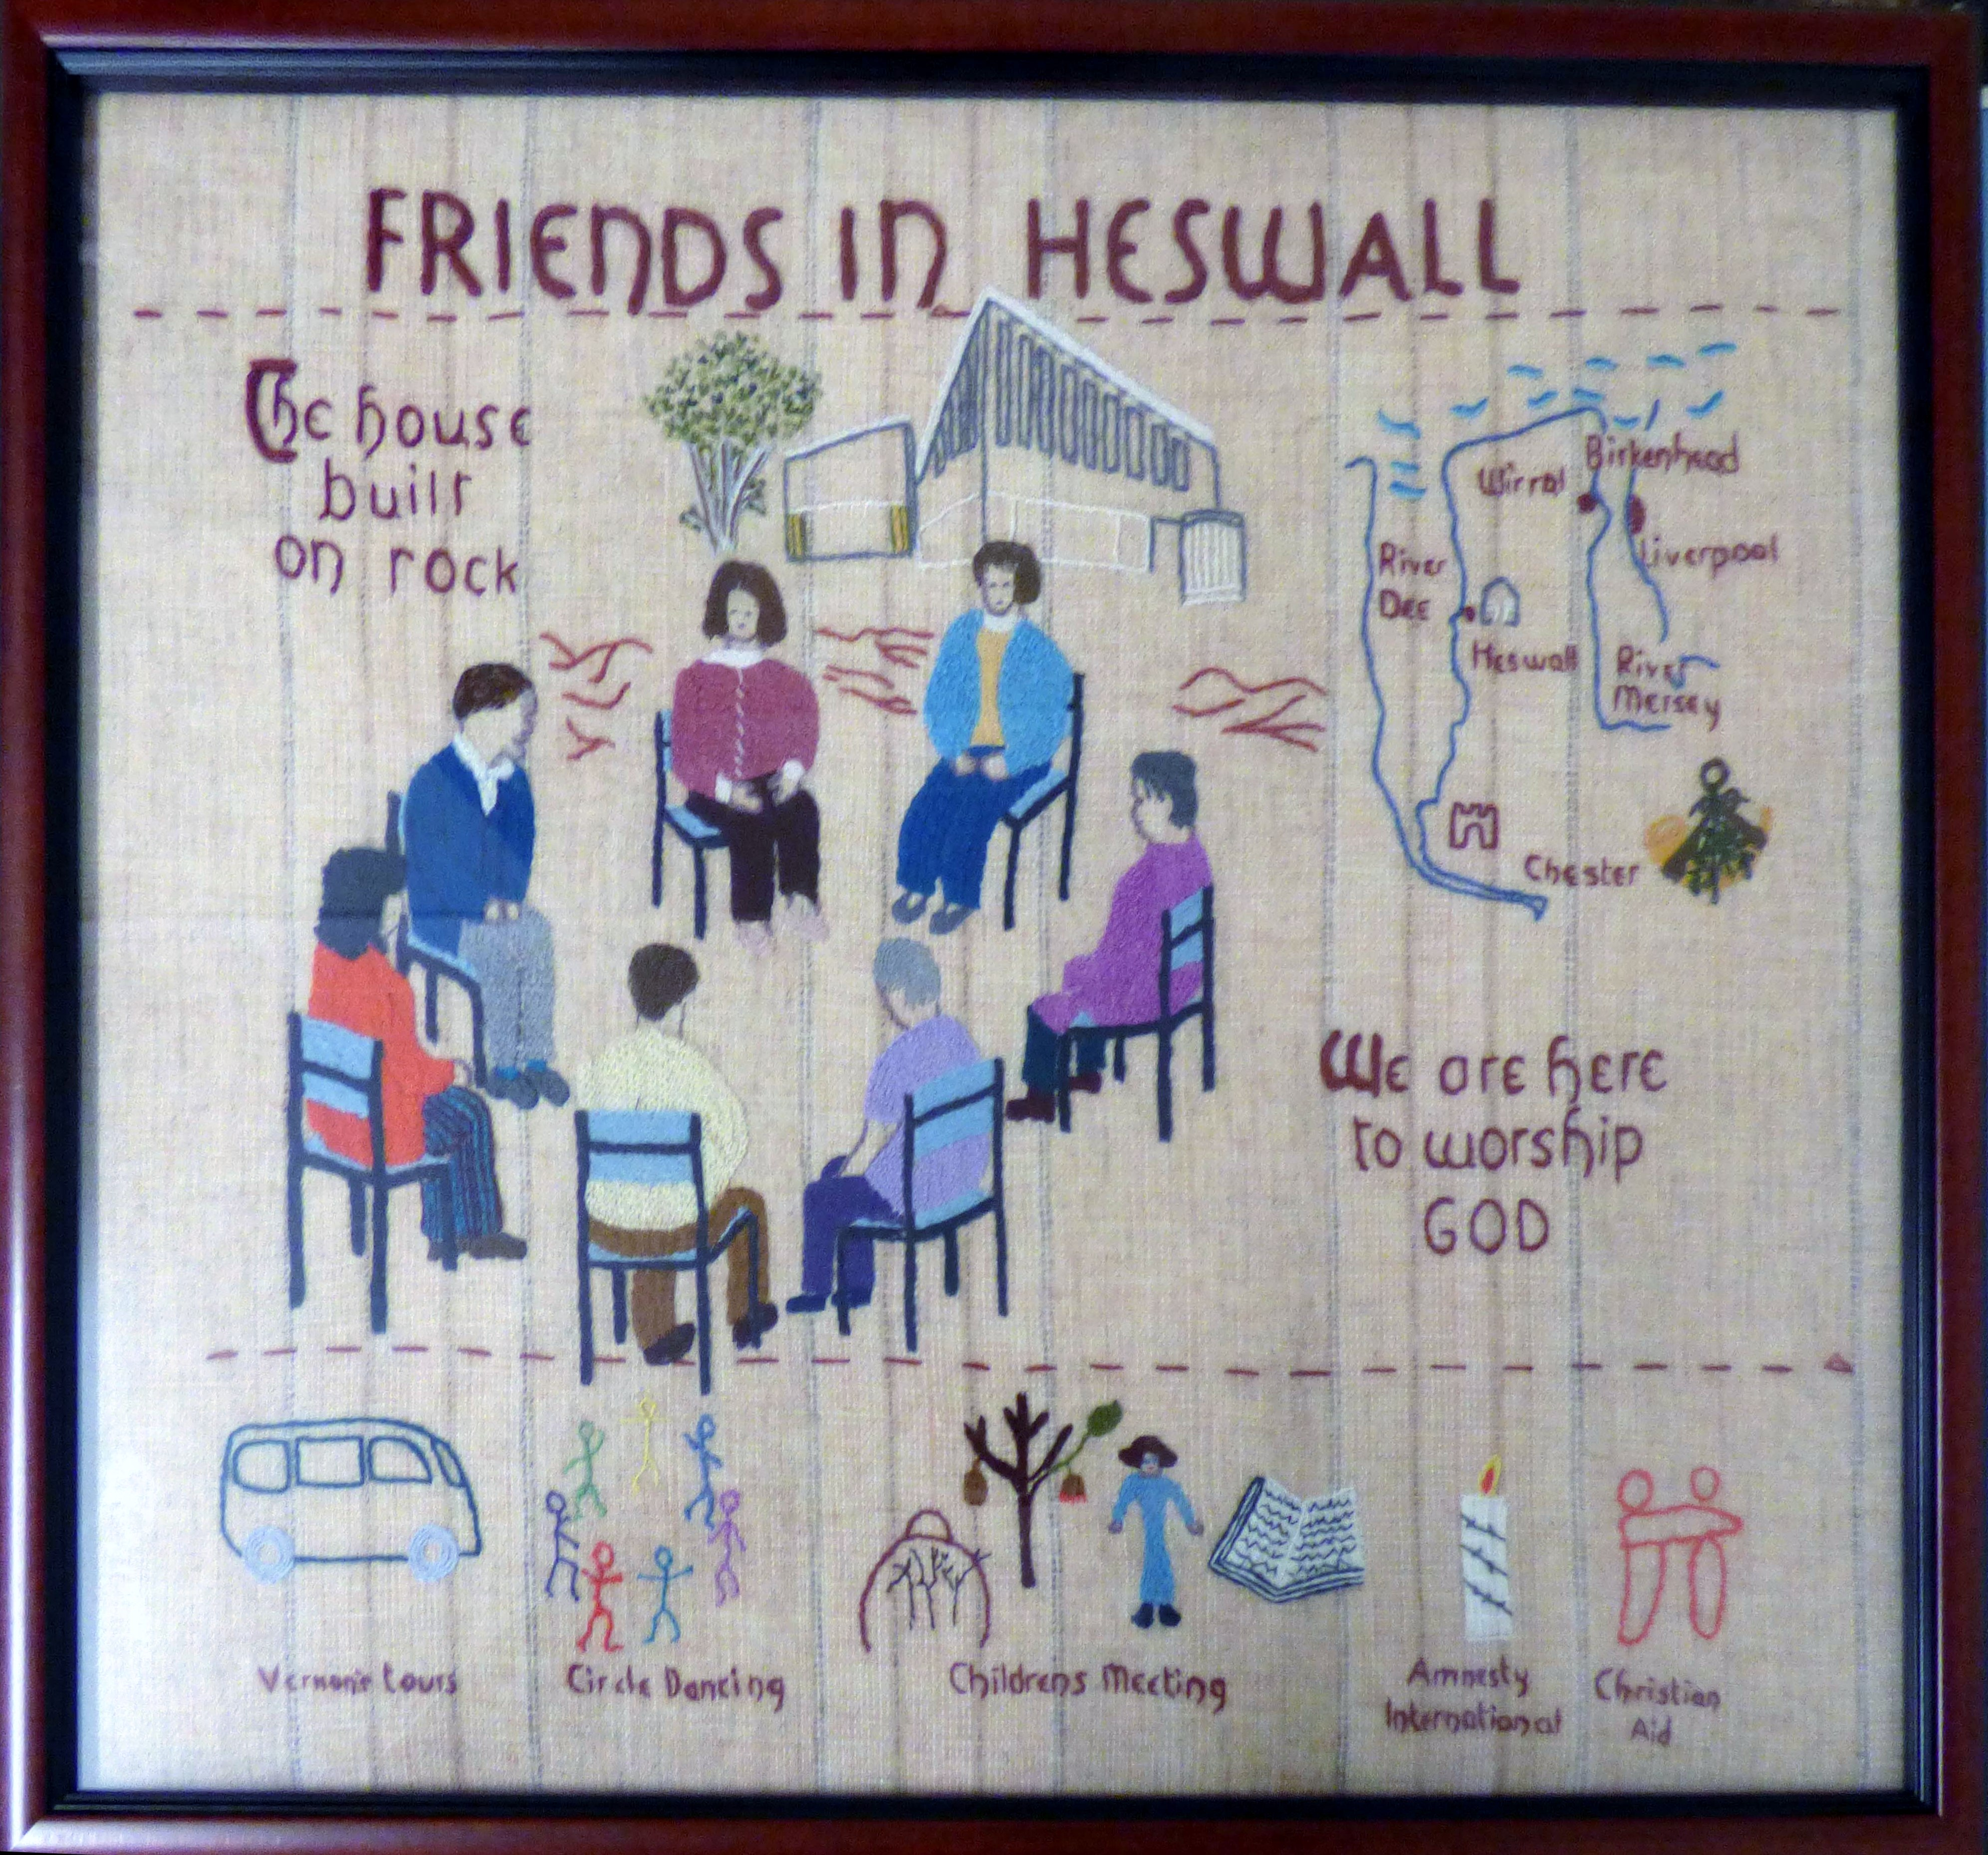 panel from the Quaker Tapestry made by a group in Heswall